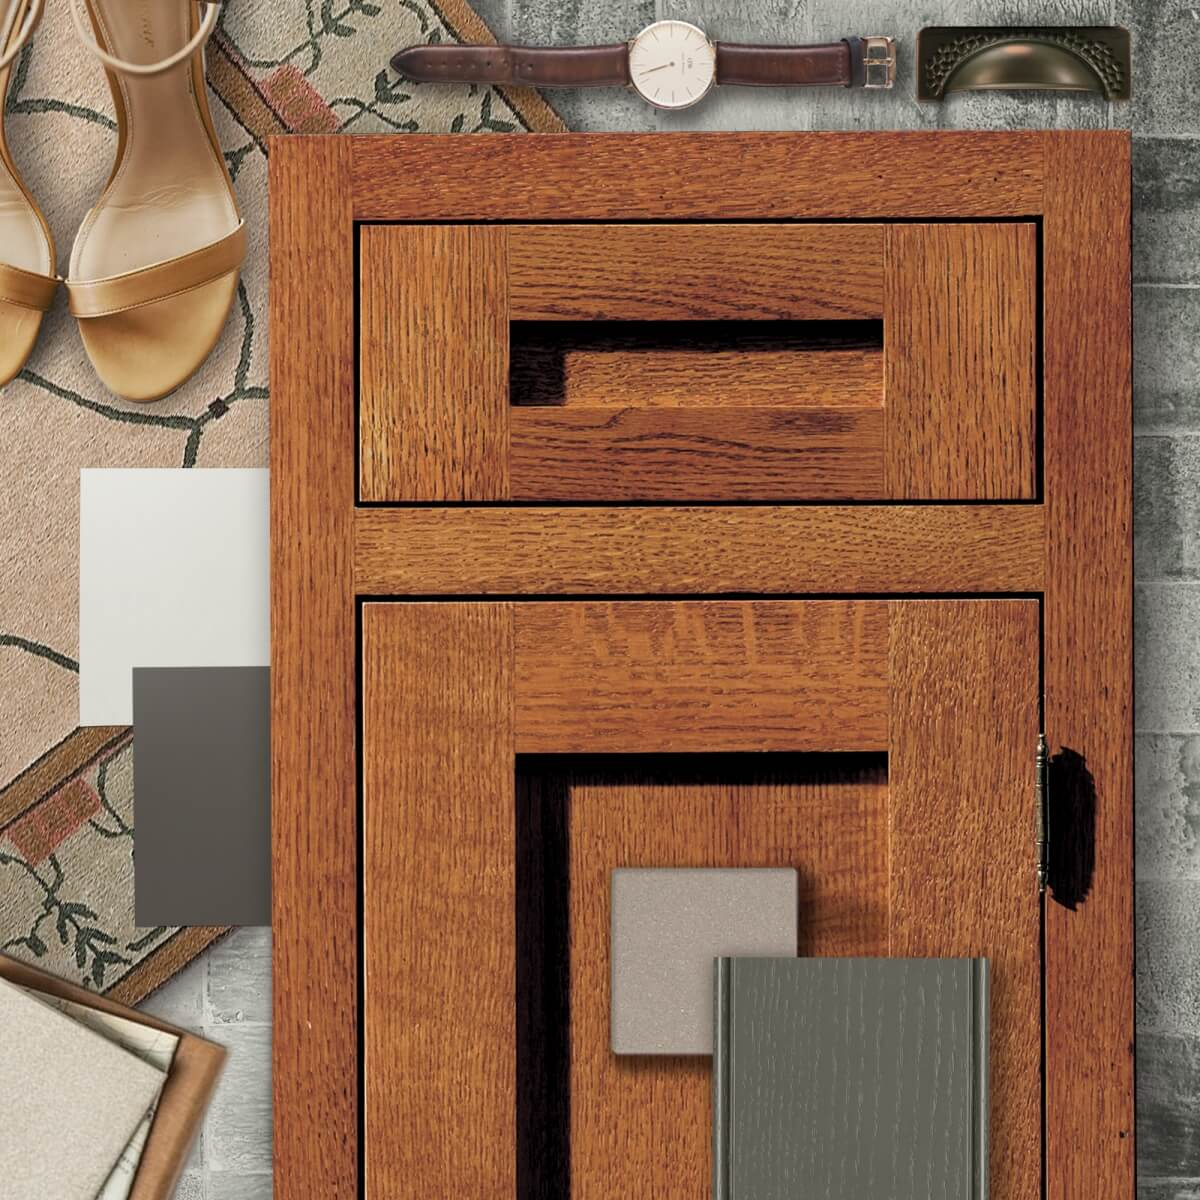 A classic crafsman styled kitchen design mood board with quartersawn red oak and a warn red stain.